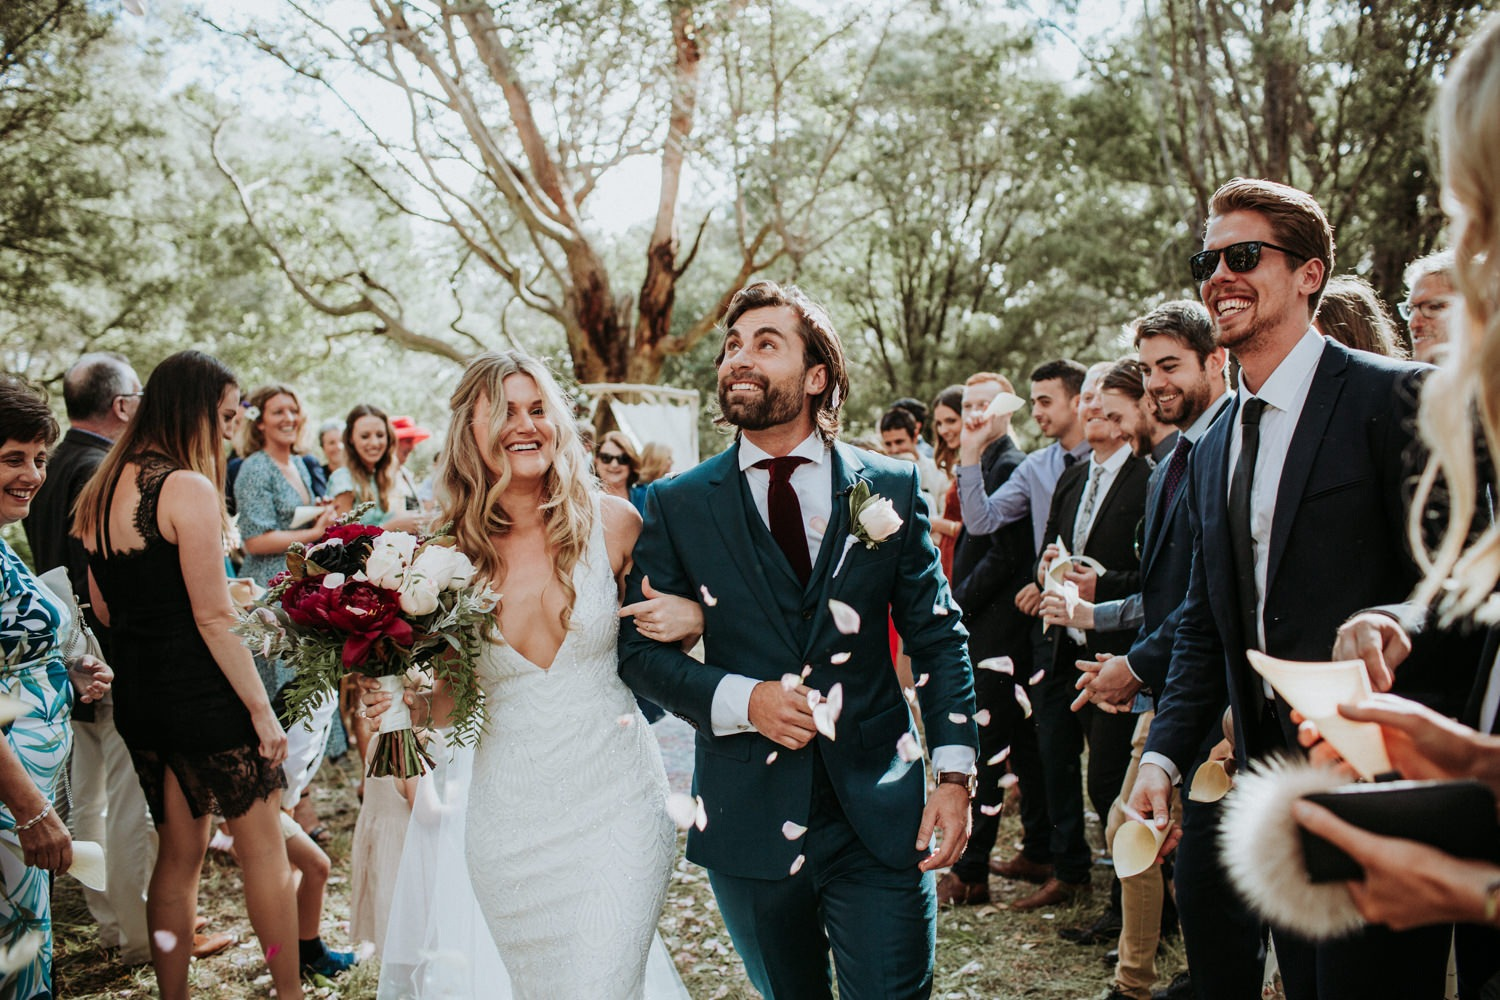 Byron Bay Couple walking down the aisle after the ceremony. Rose petals thrown at them